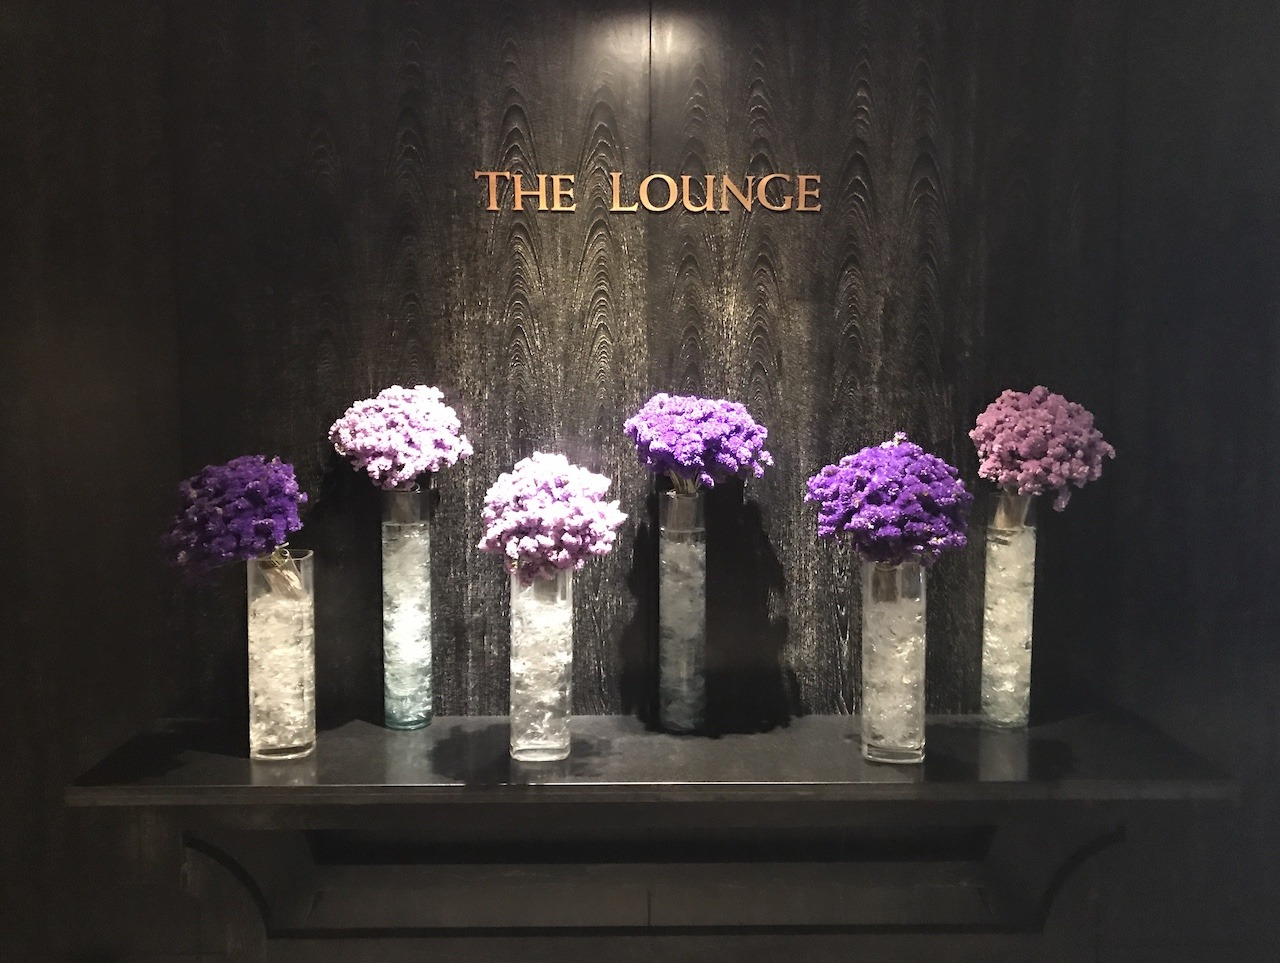 JW Marriott Bangkok lounge entrance